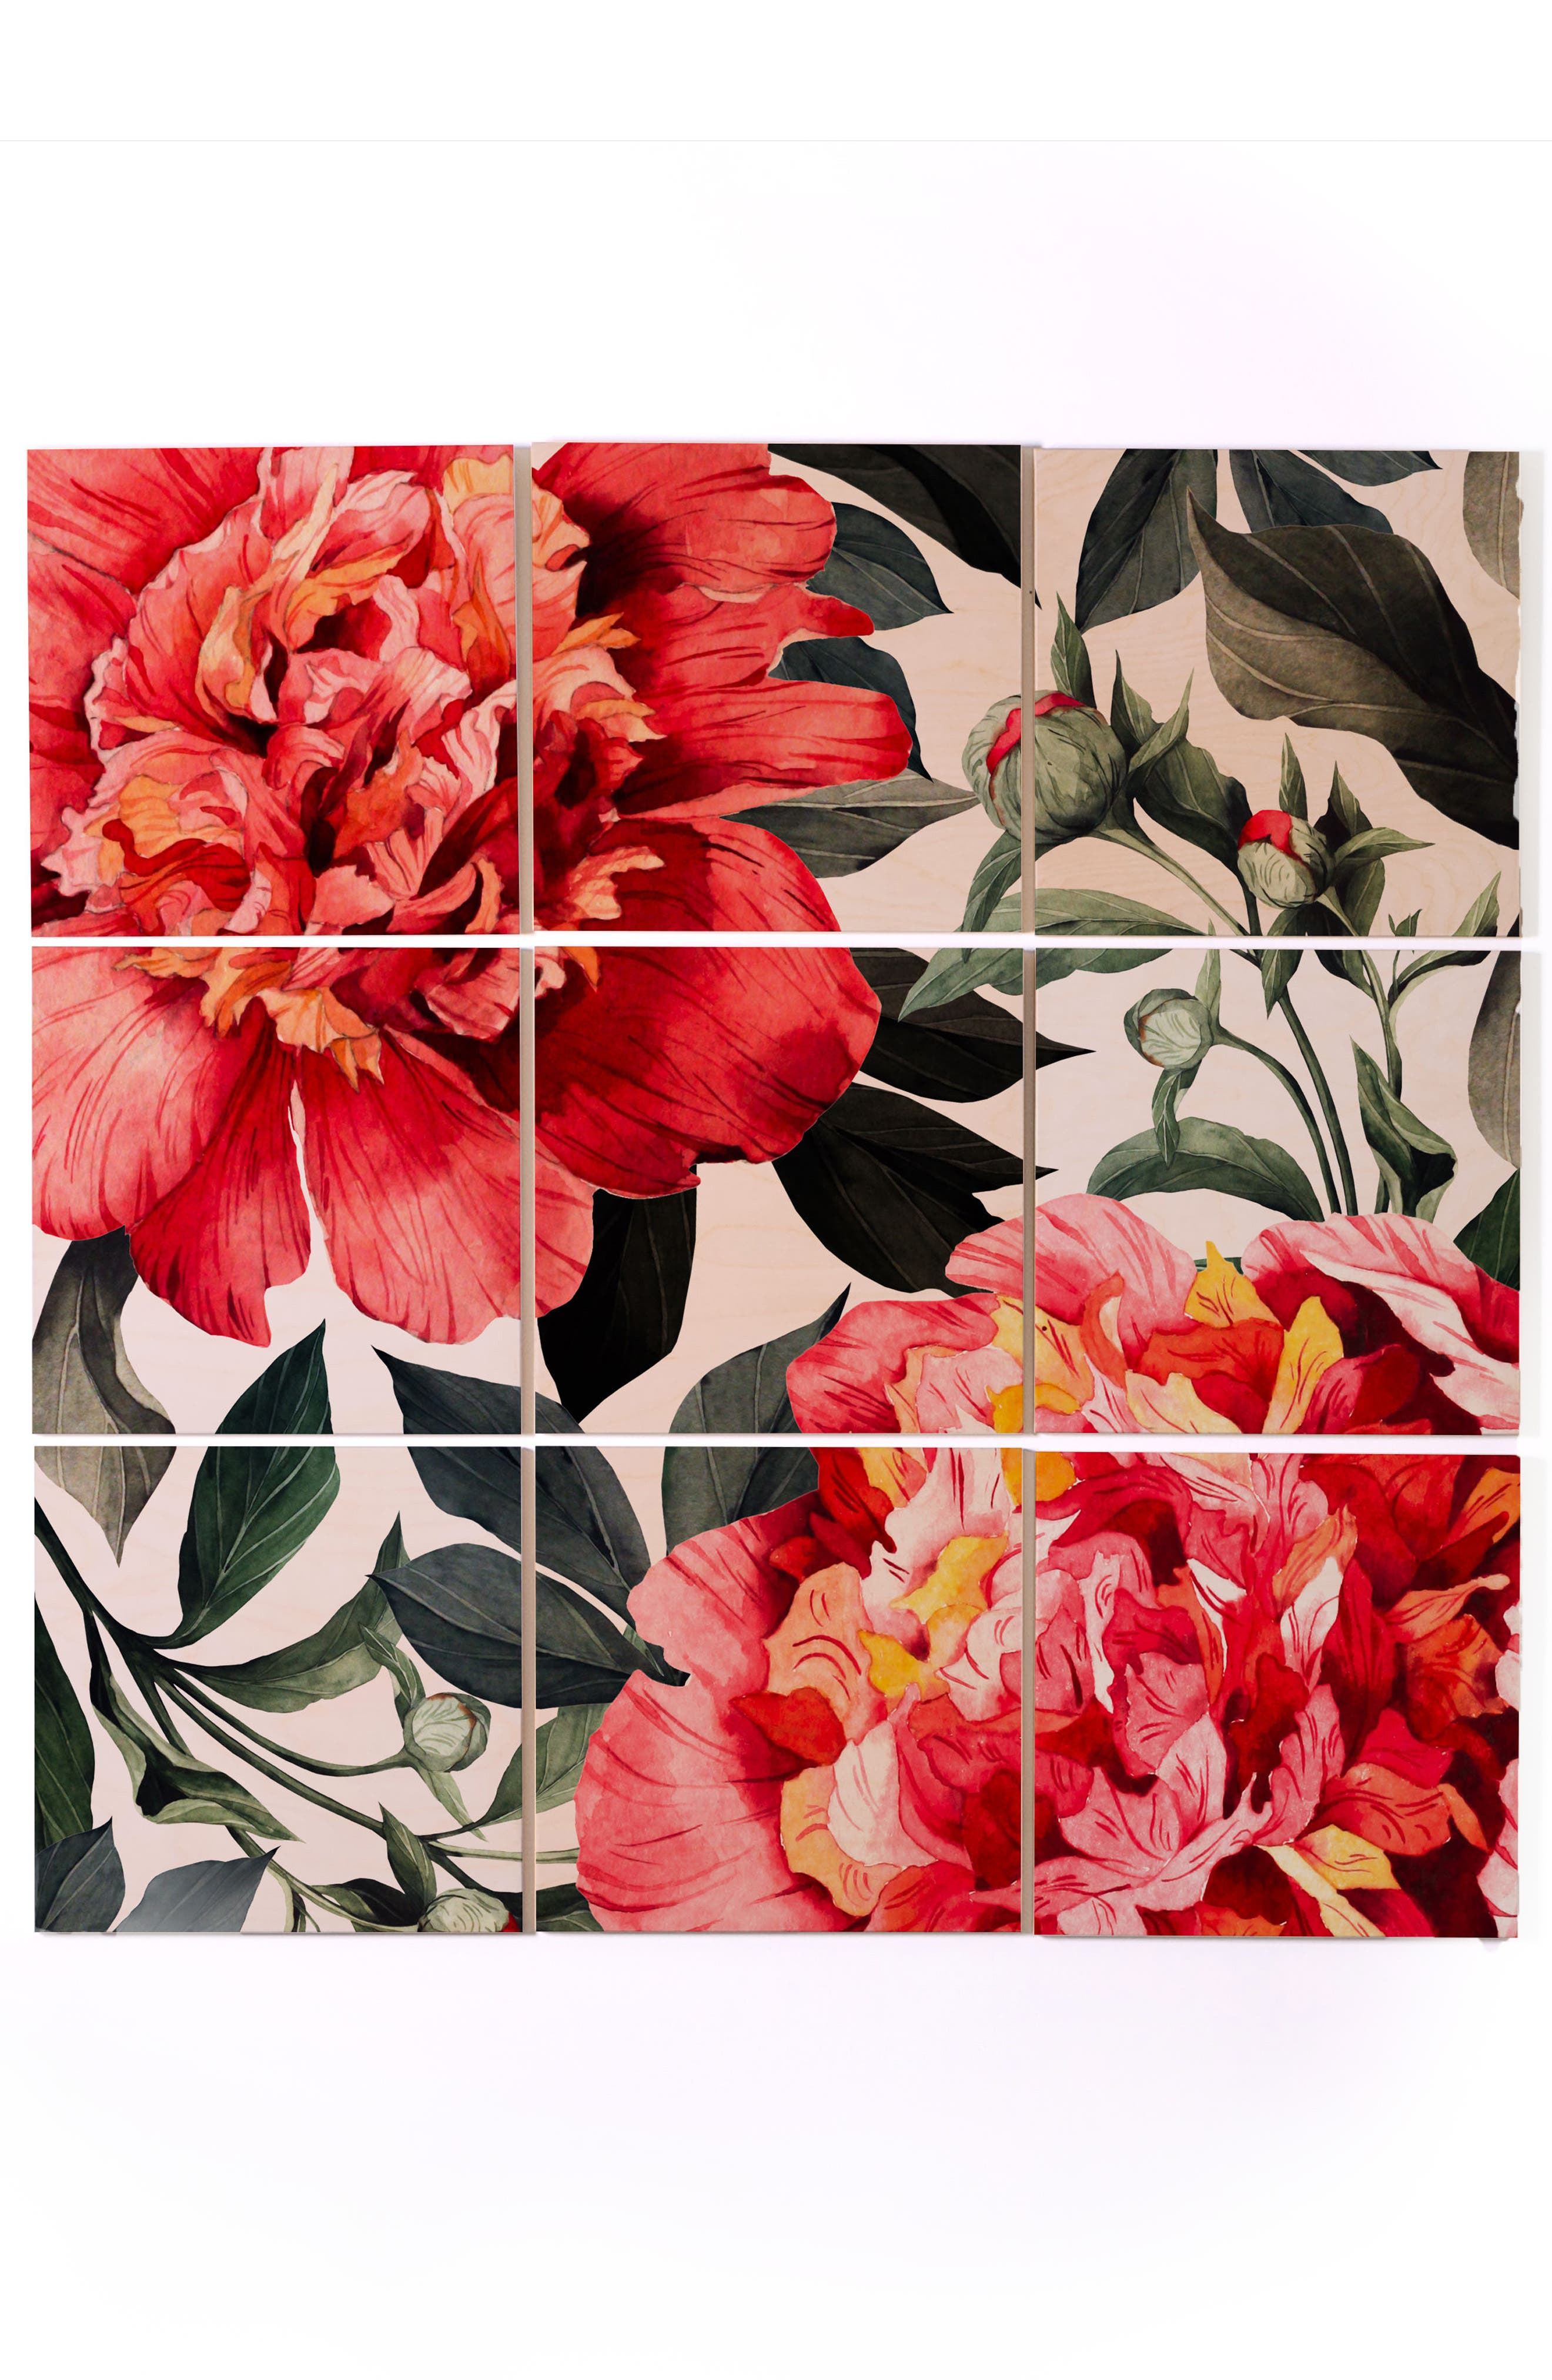 Main Image - Deny Designs Red Flowers 9-Piece Wood Wall Mural